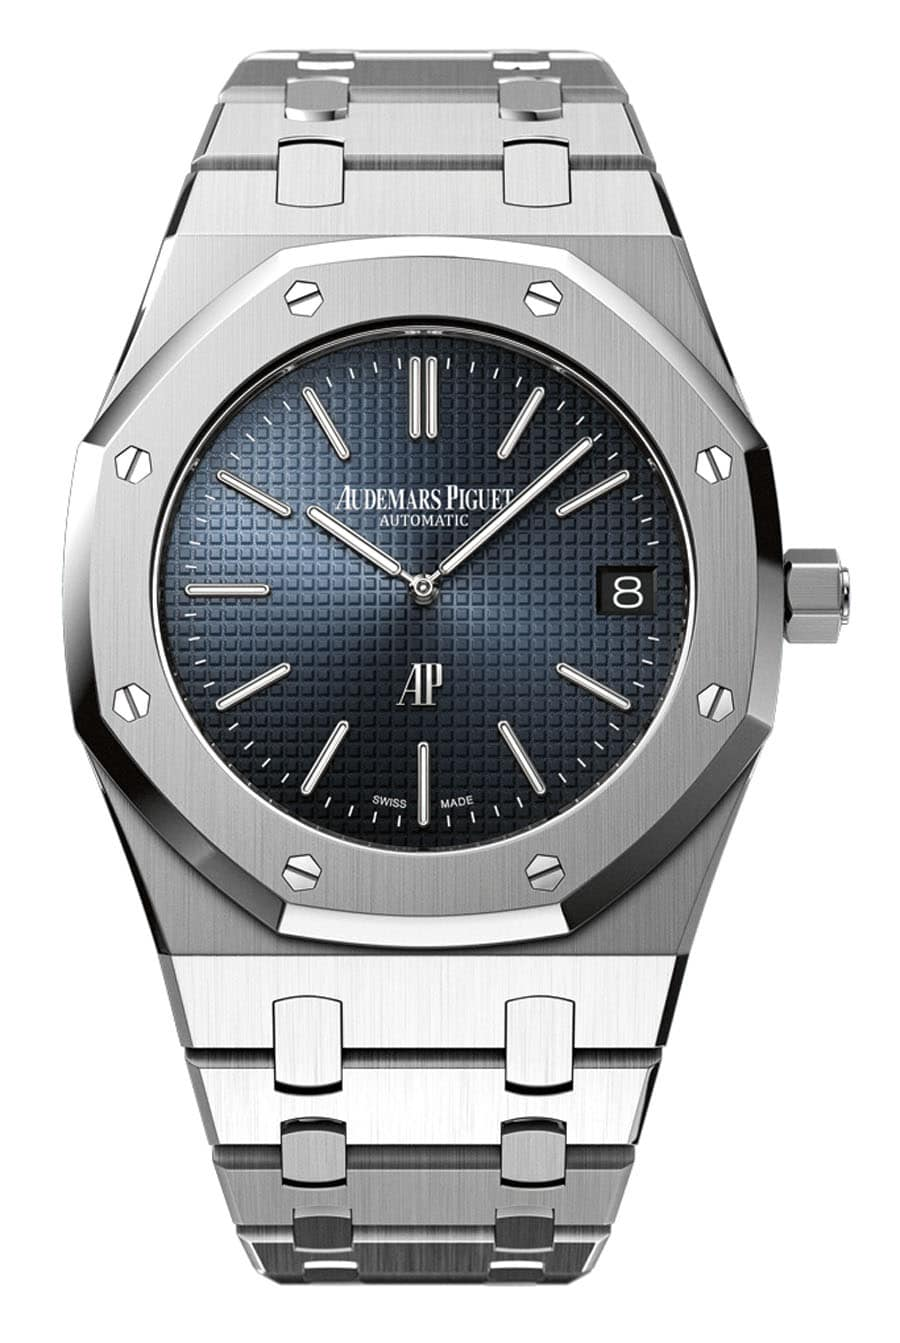 Uhren-Ikone #3: Audemars Piguet Royal Oak